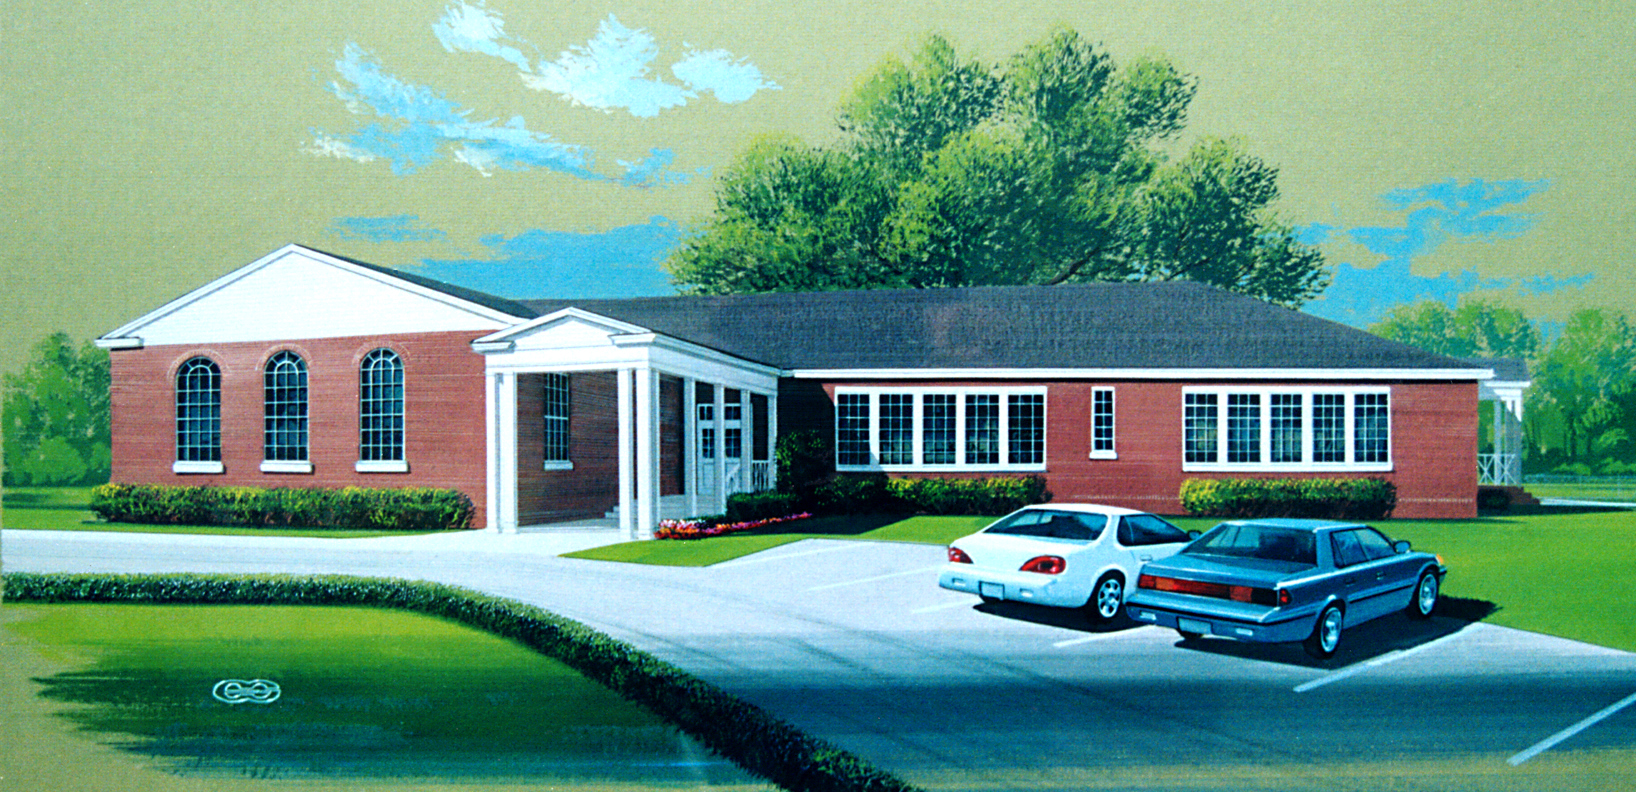 Artist's rendering of the restored Hernando School